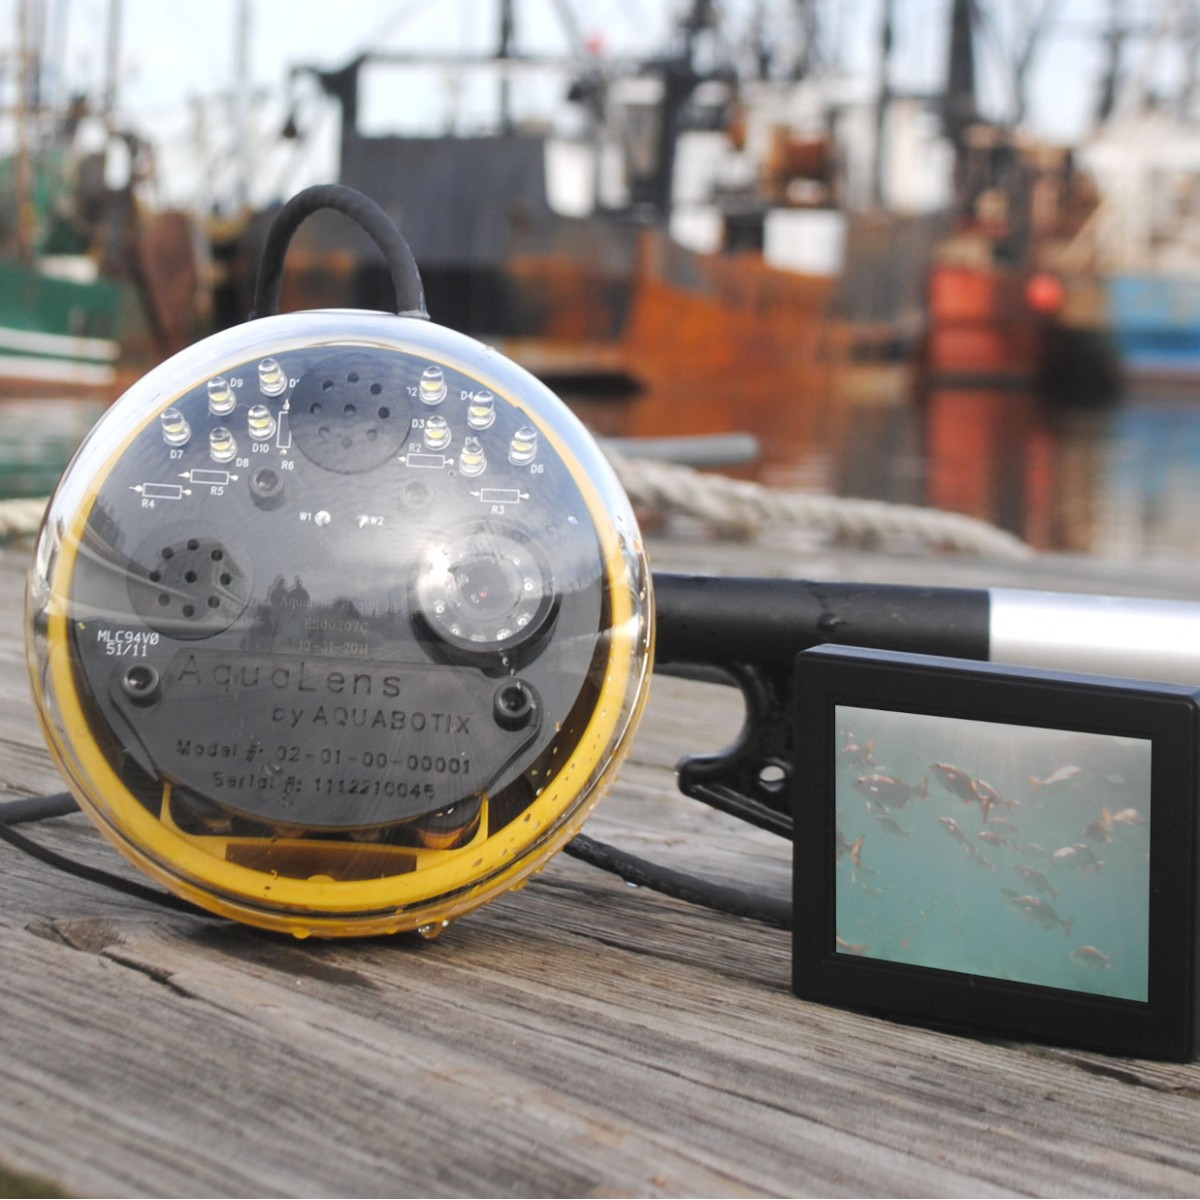 AquaLens - Underwater Viewing System